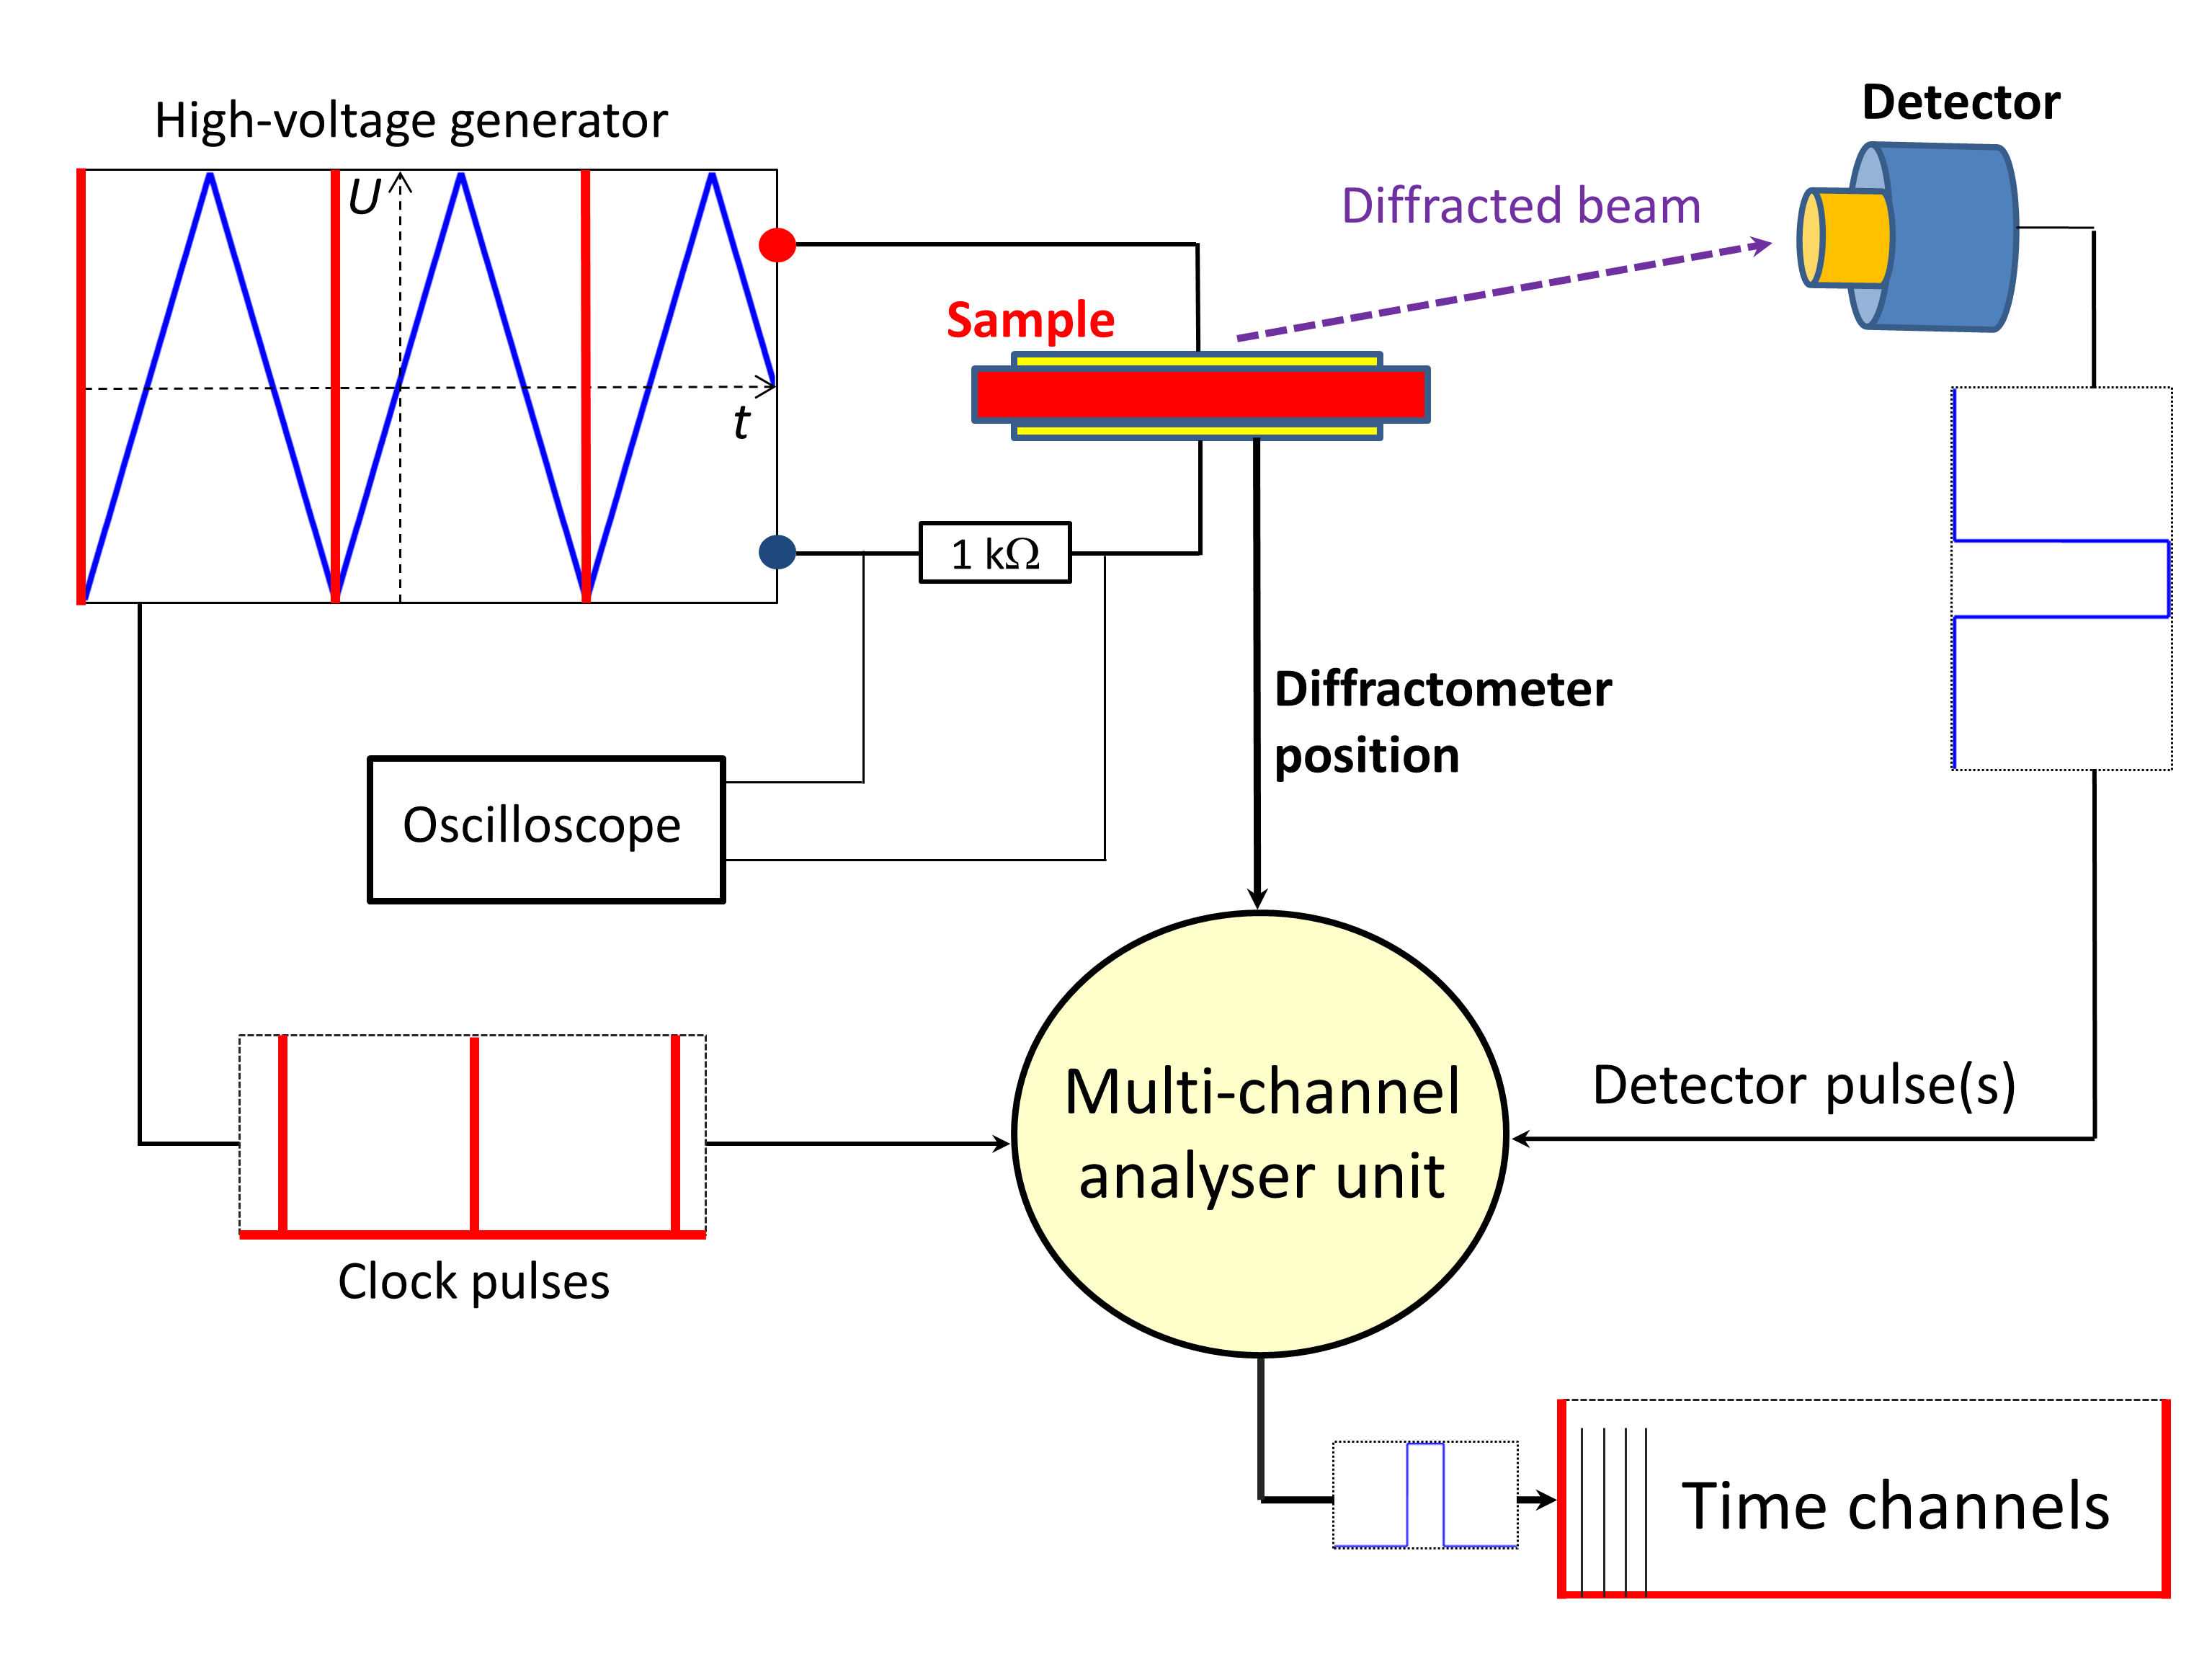 Figures Arbeitsgruppe Festkrperphysik Channel Spectrum Analyzer Electronic Circuit Diagram Schematic View Of Time Resolved X Ray Diffraction Experiment Based On A Multi Analyser Cyclic Perturbation Electric Field Magnetic